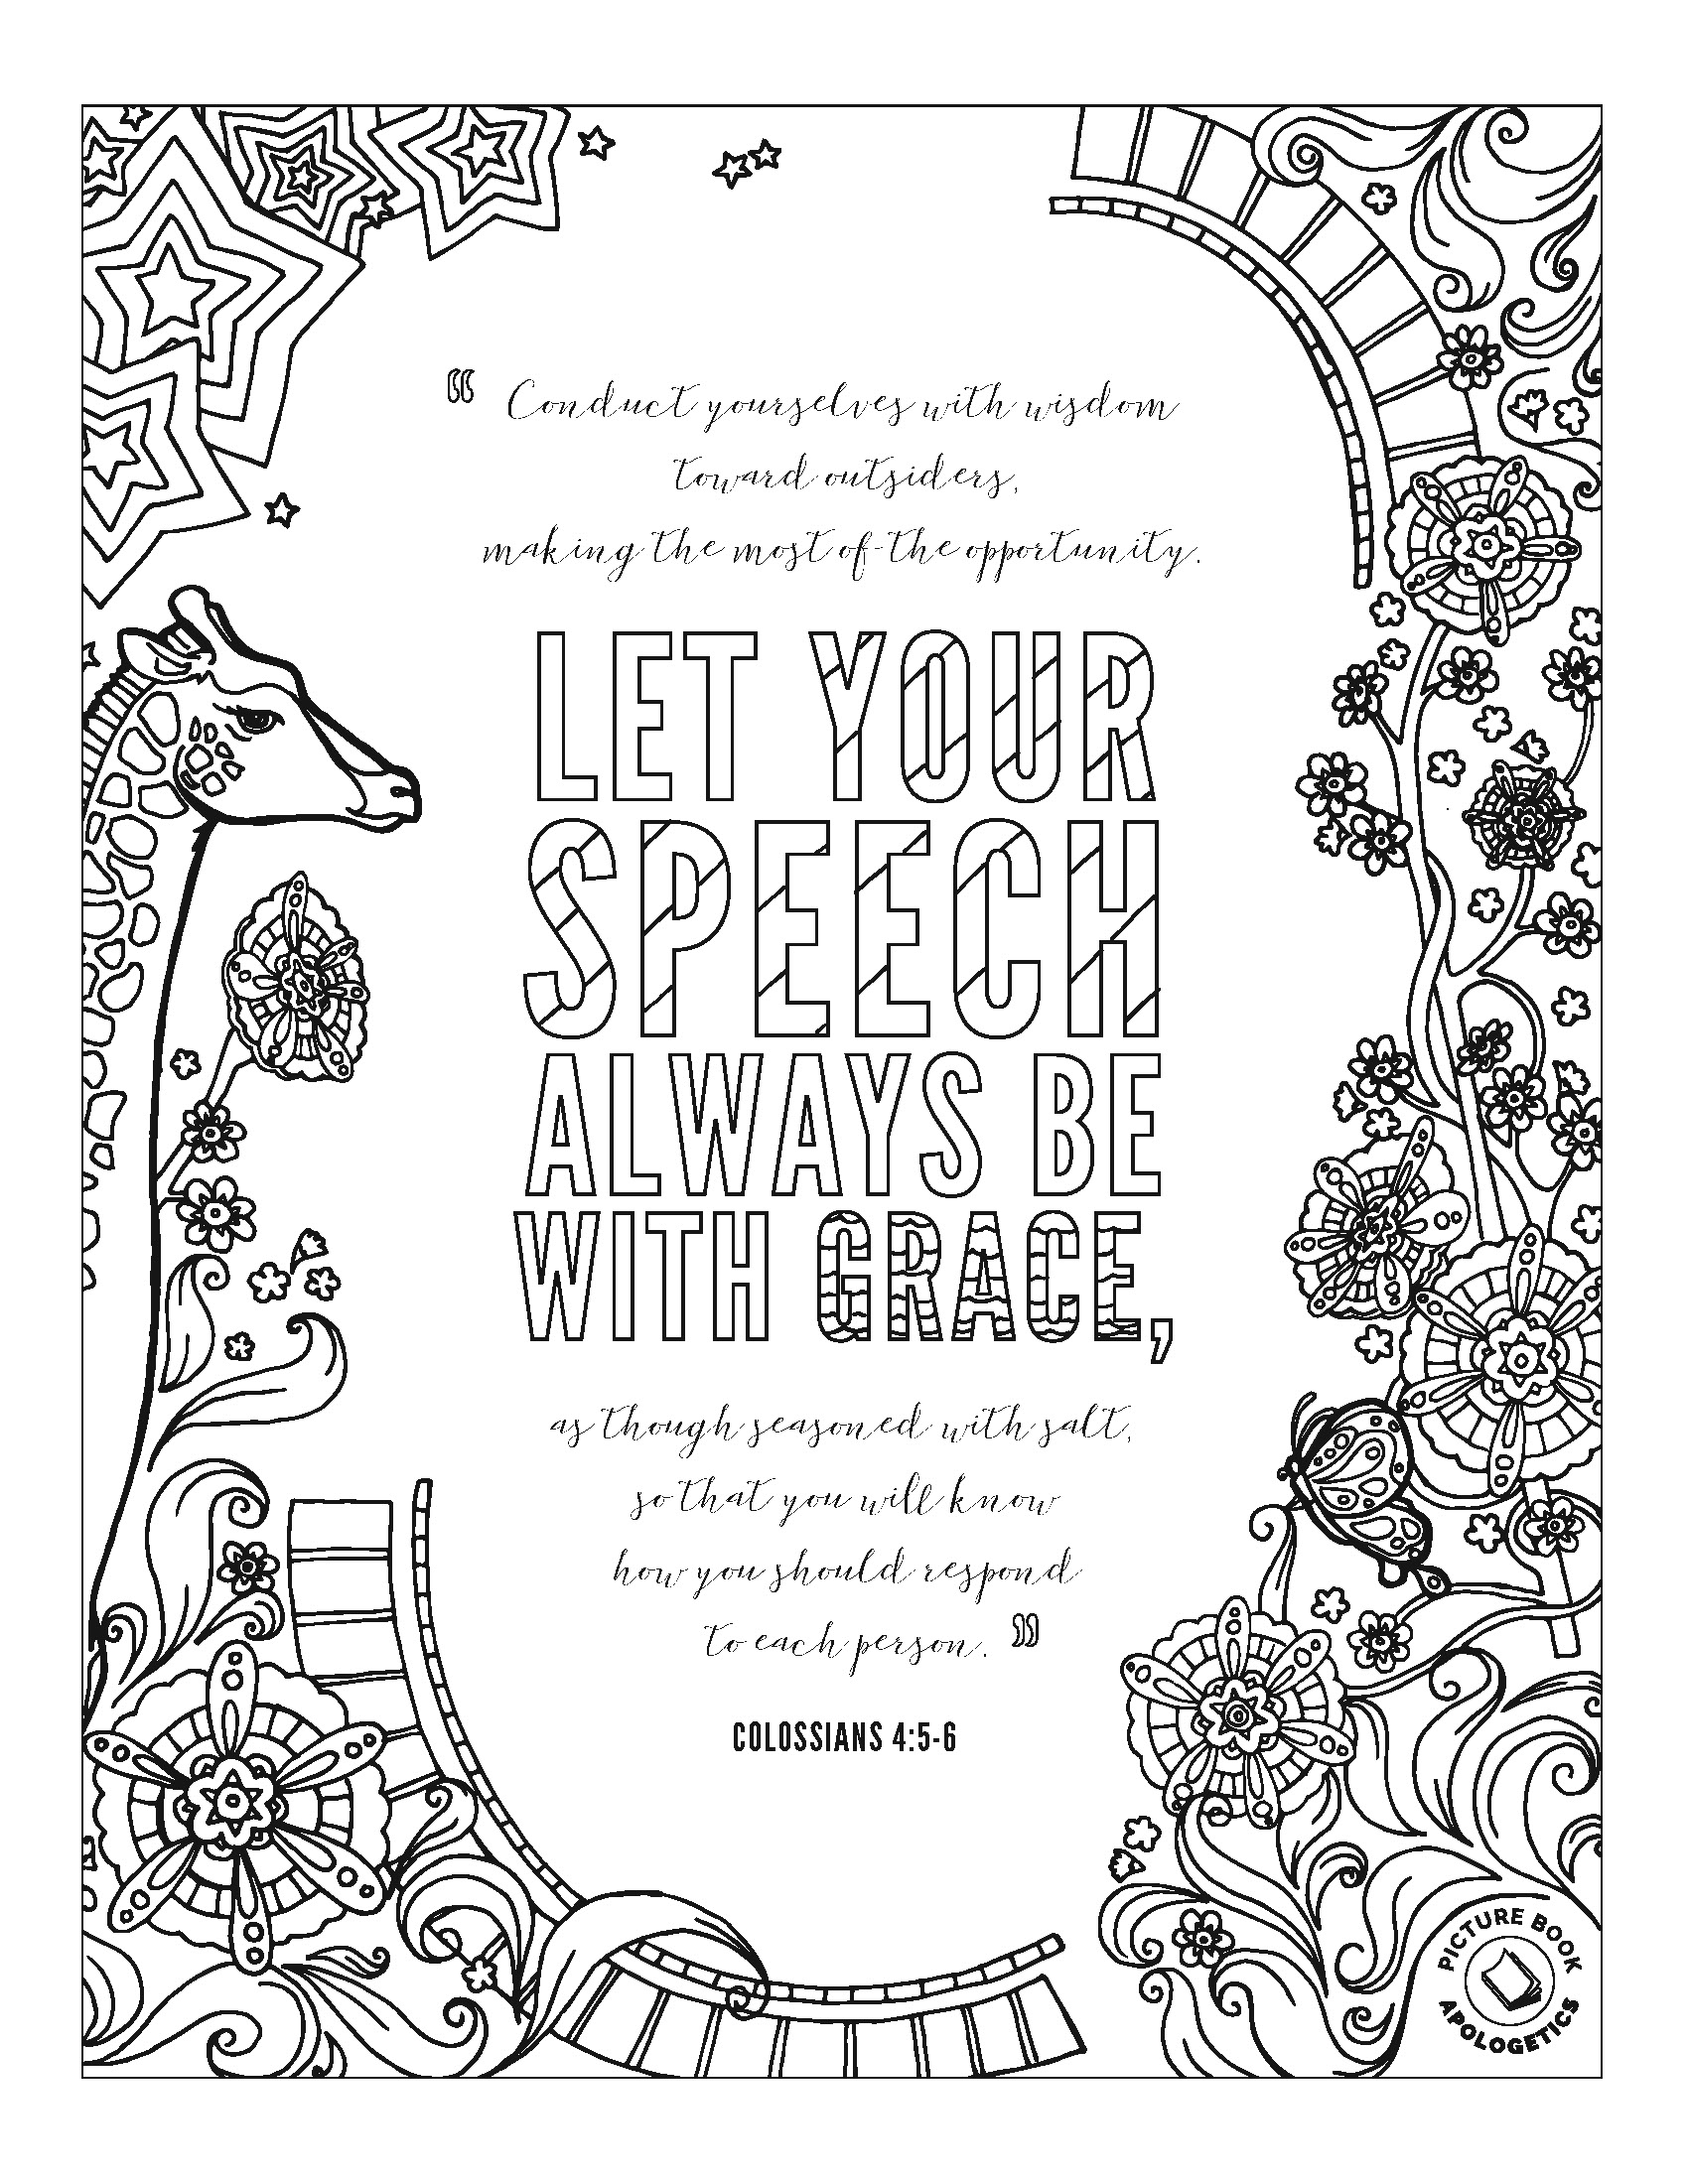 coloring pages 1 5 give all your cares 1 peter 5 7 coloring canvas 1 5 pages coloring